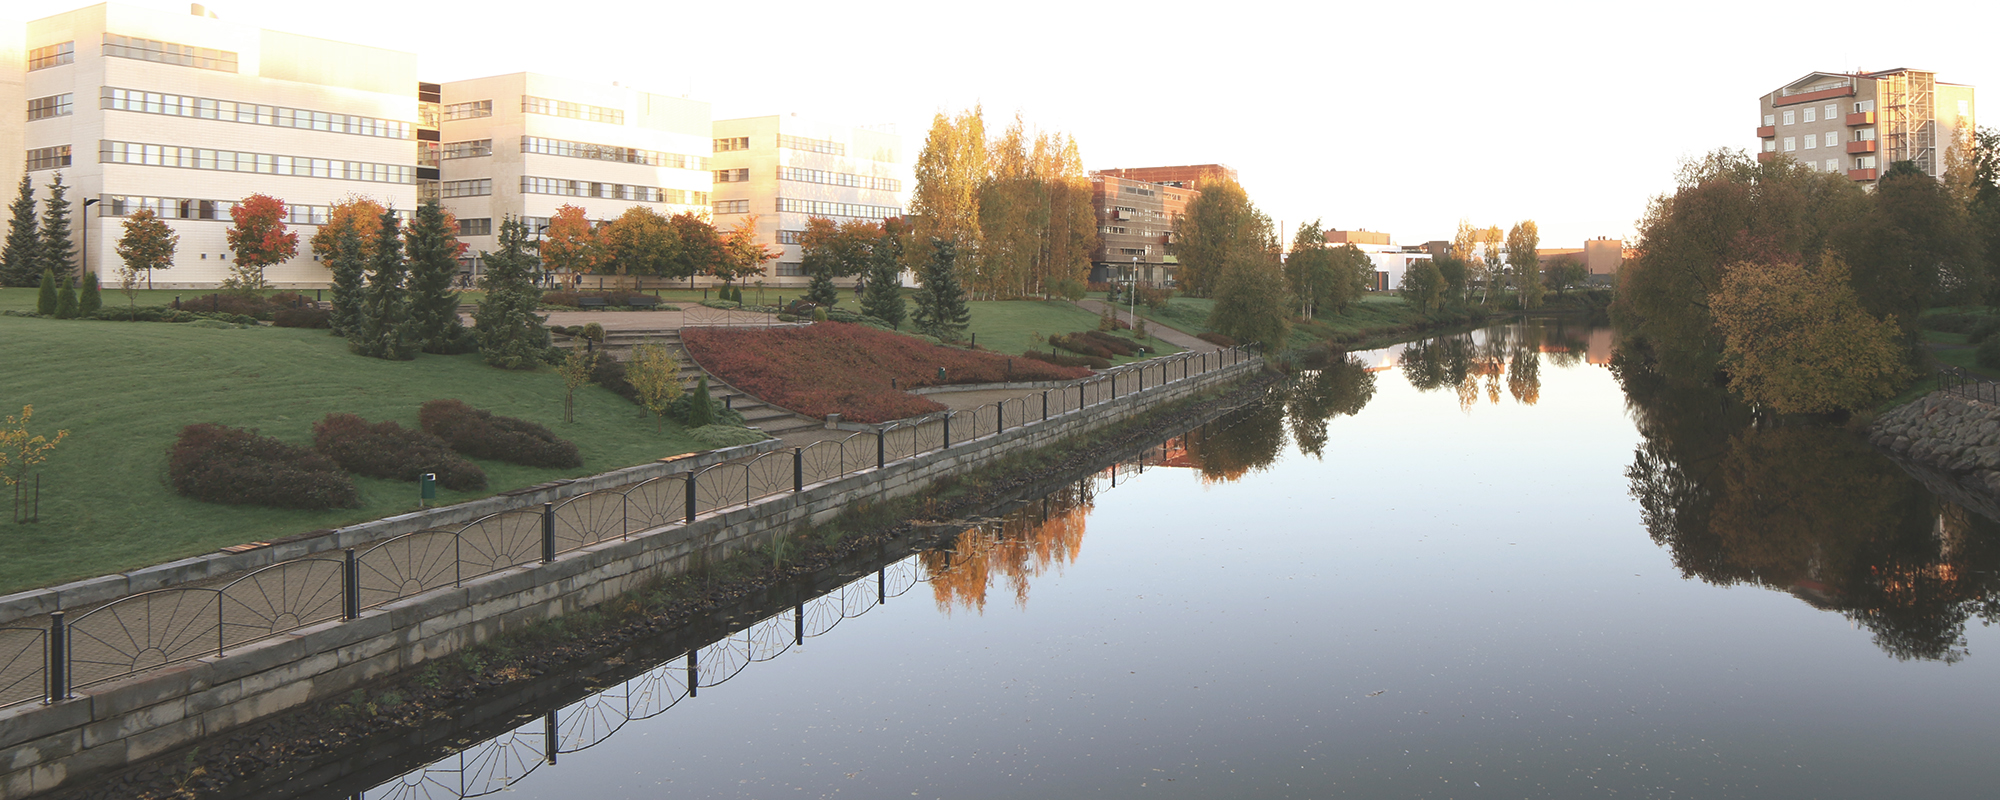 Frami Campus Area on a sunny Autumn morning